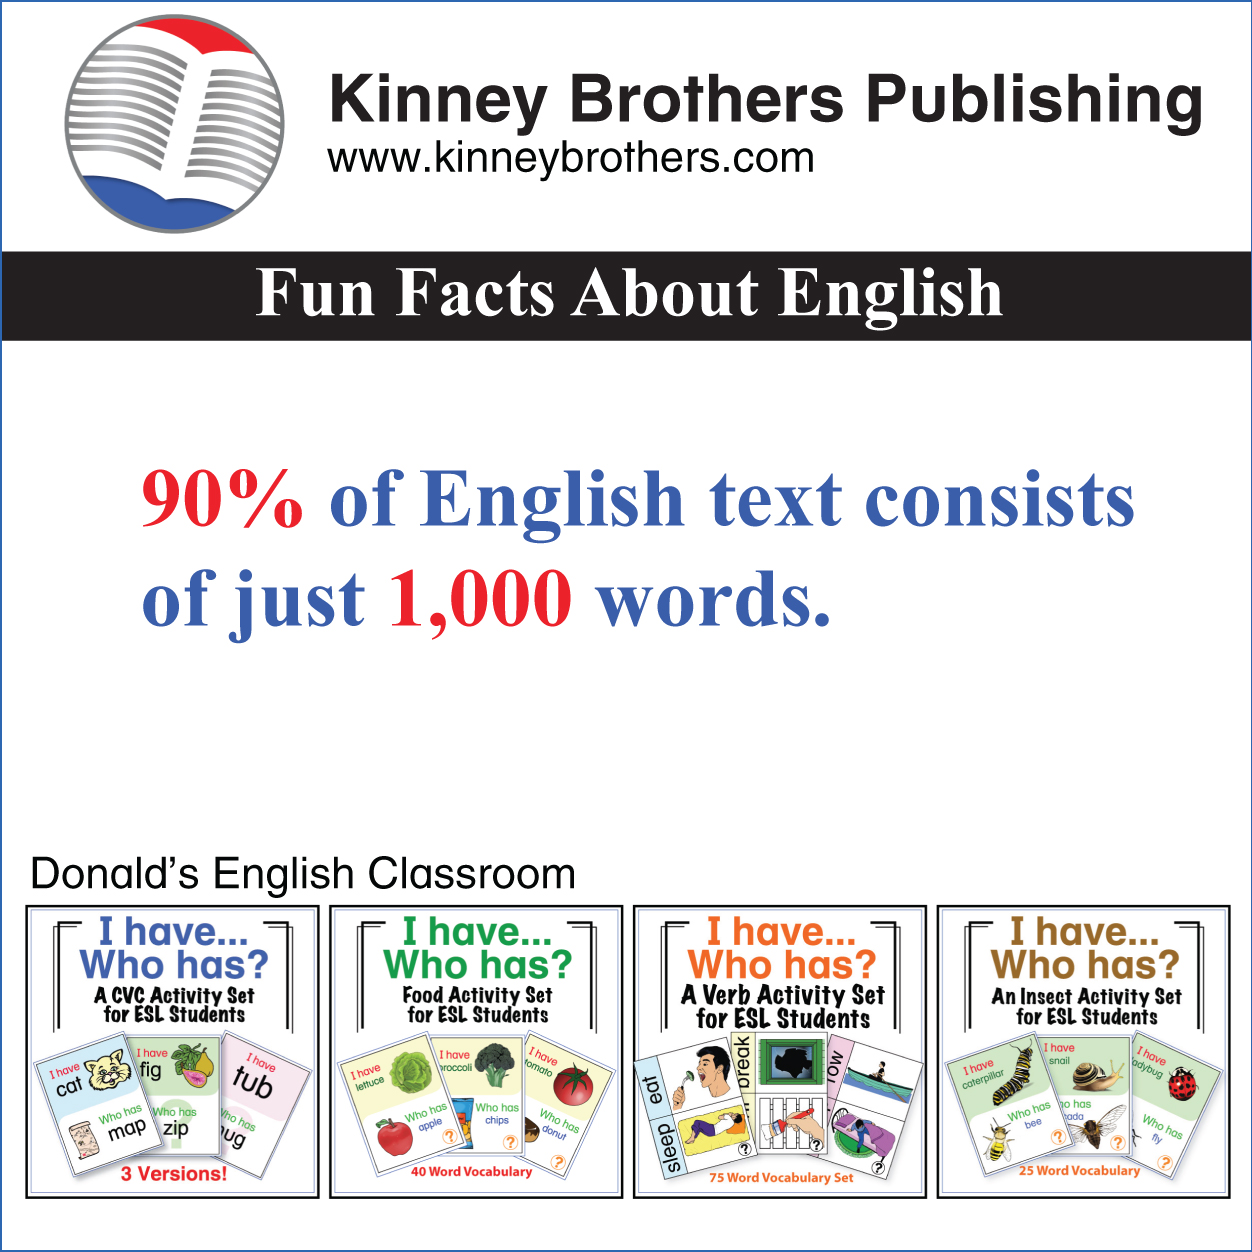 41 Flash Card Activities - Kinney Brothers Publishing